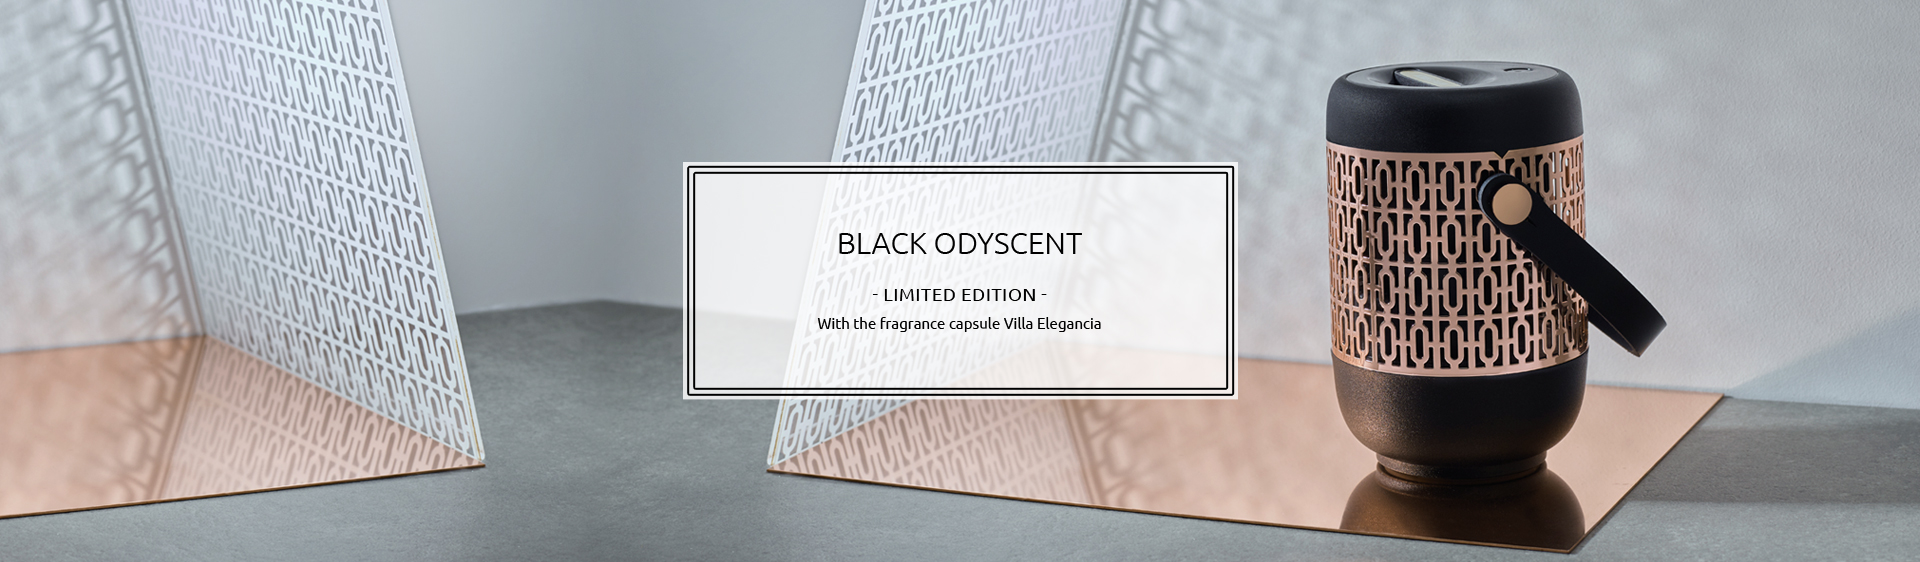 Limited Edition - Black Odyscent